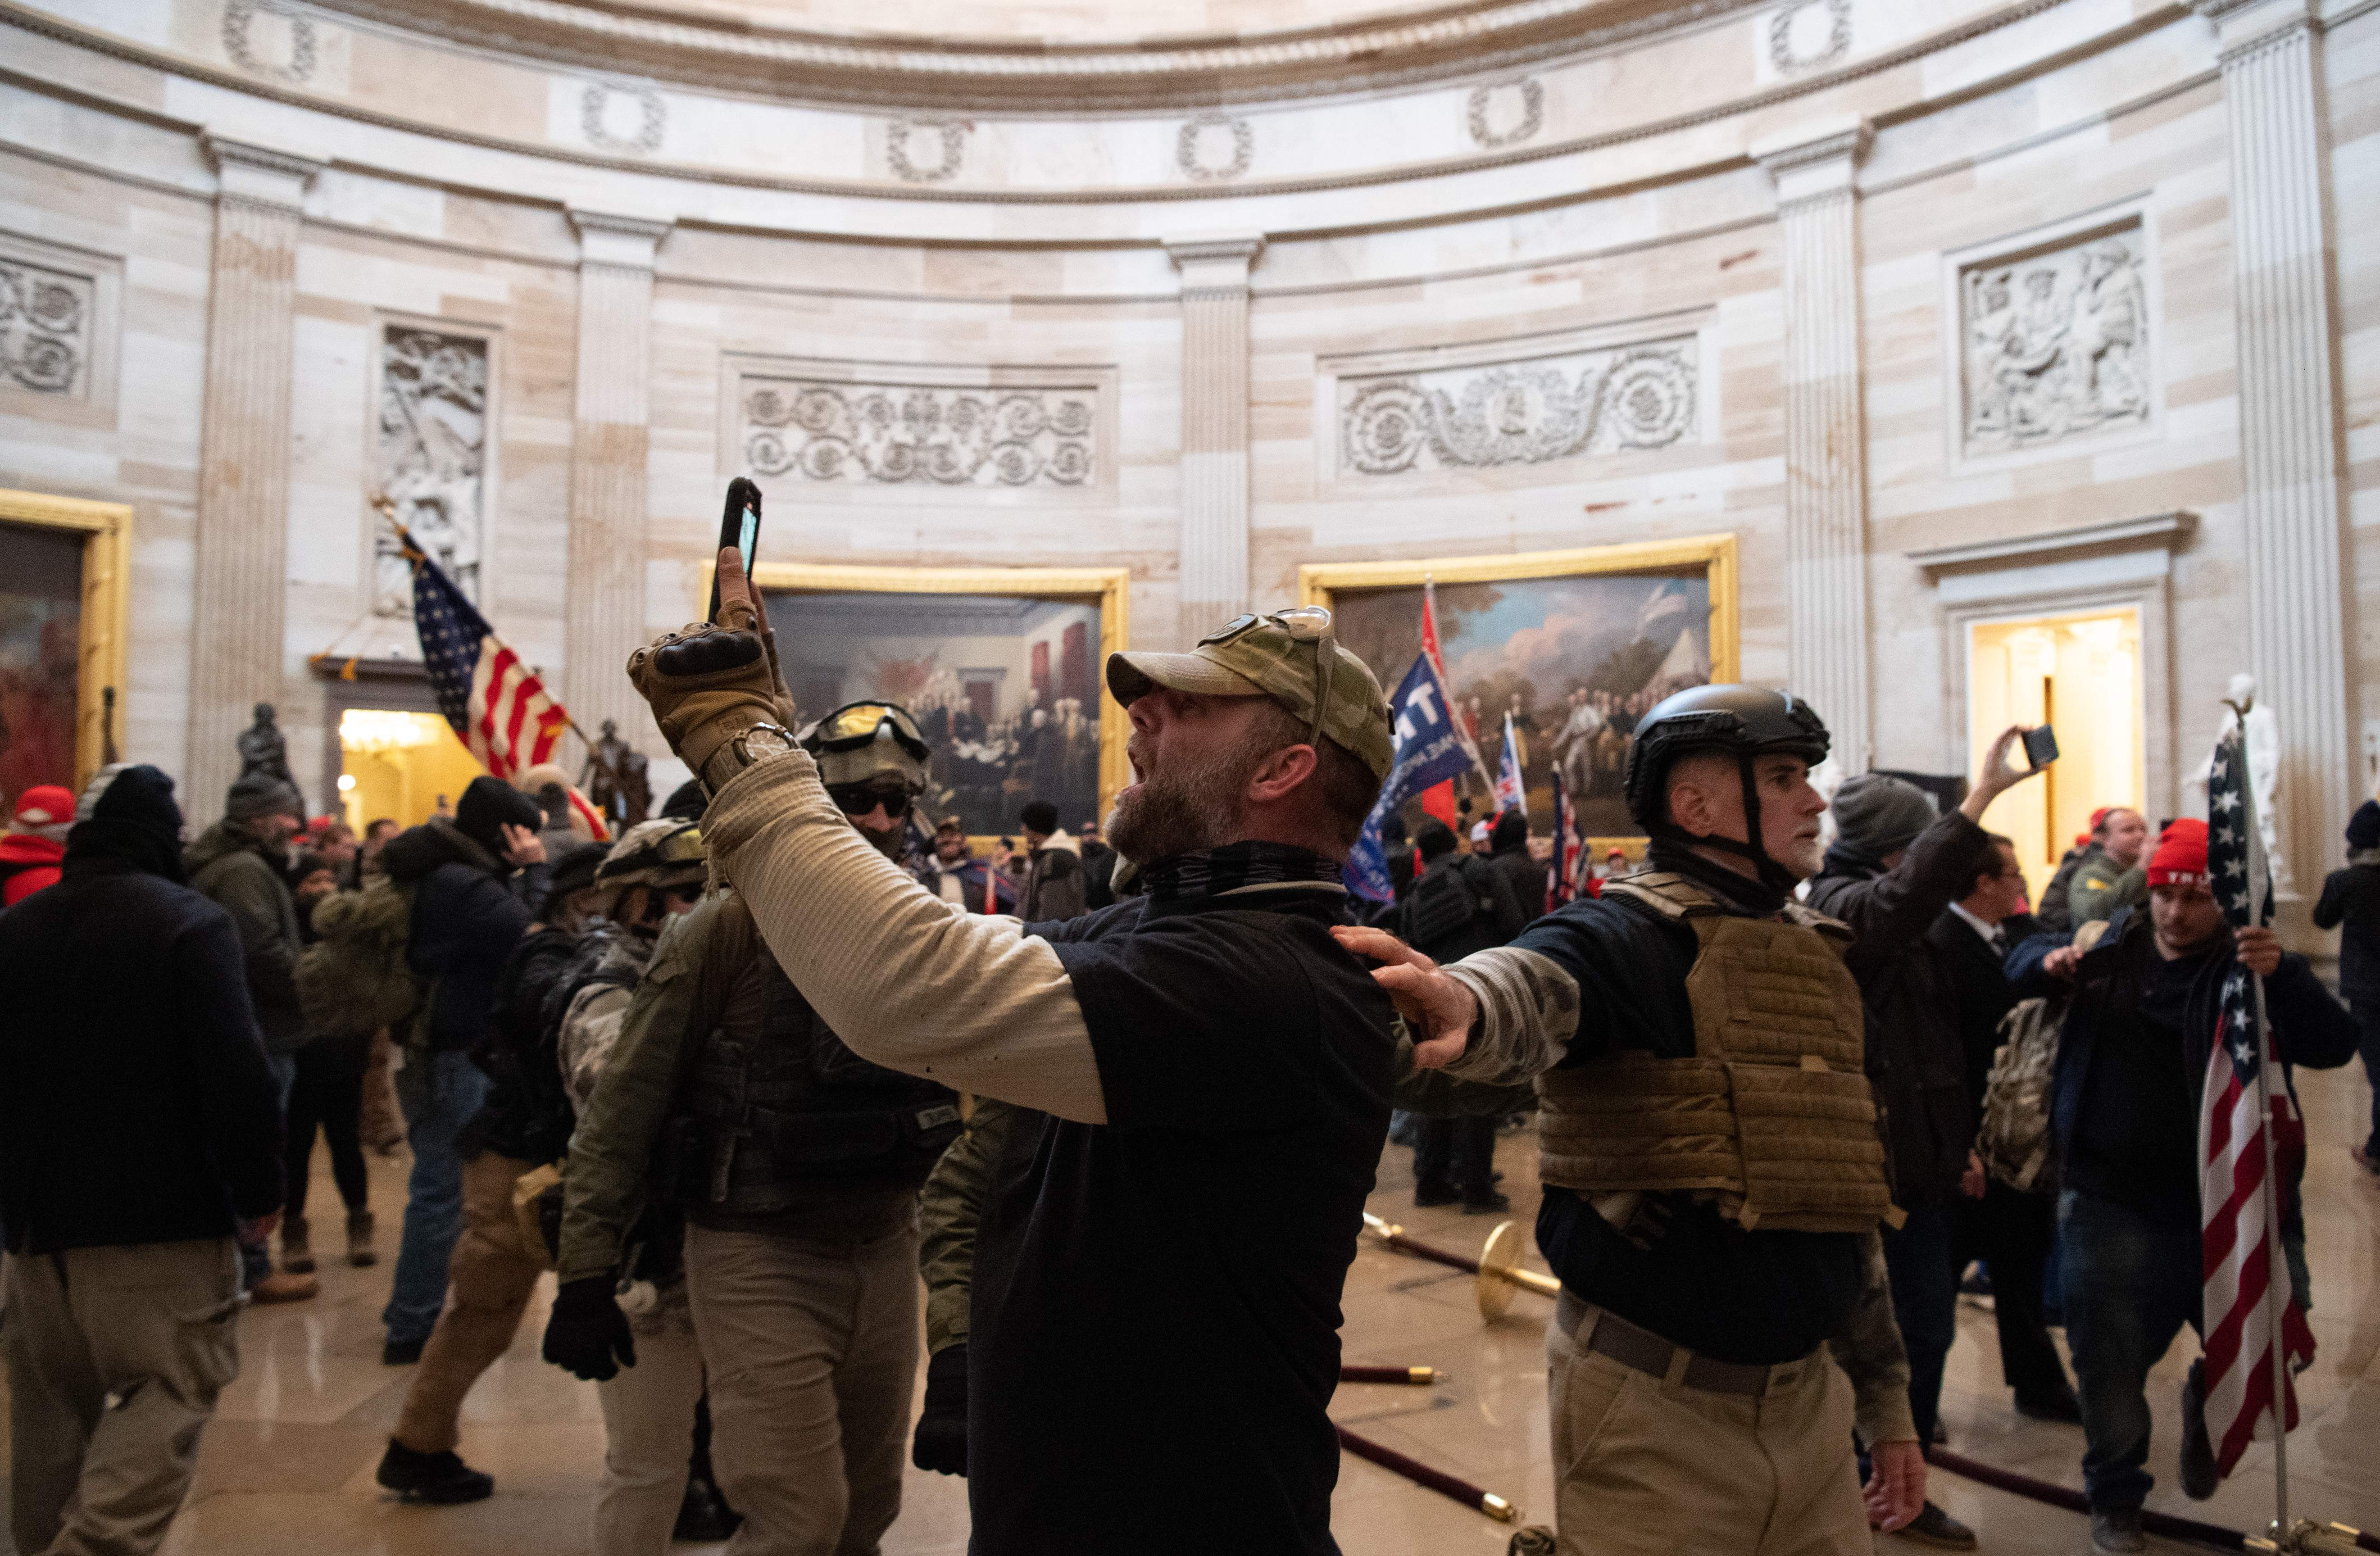 Supporters of US President Donald Trump protest inside the US Capitol